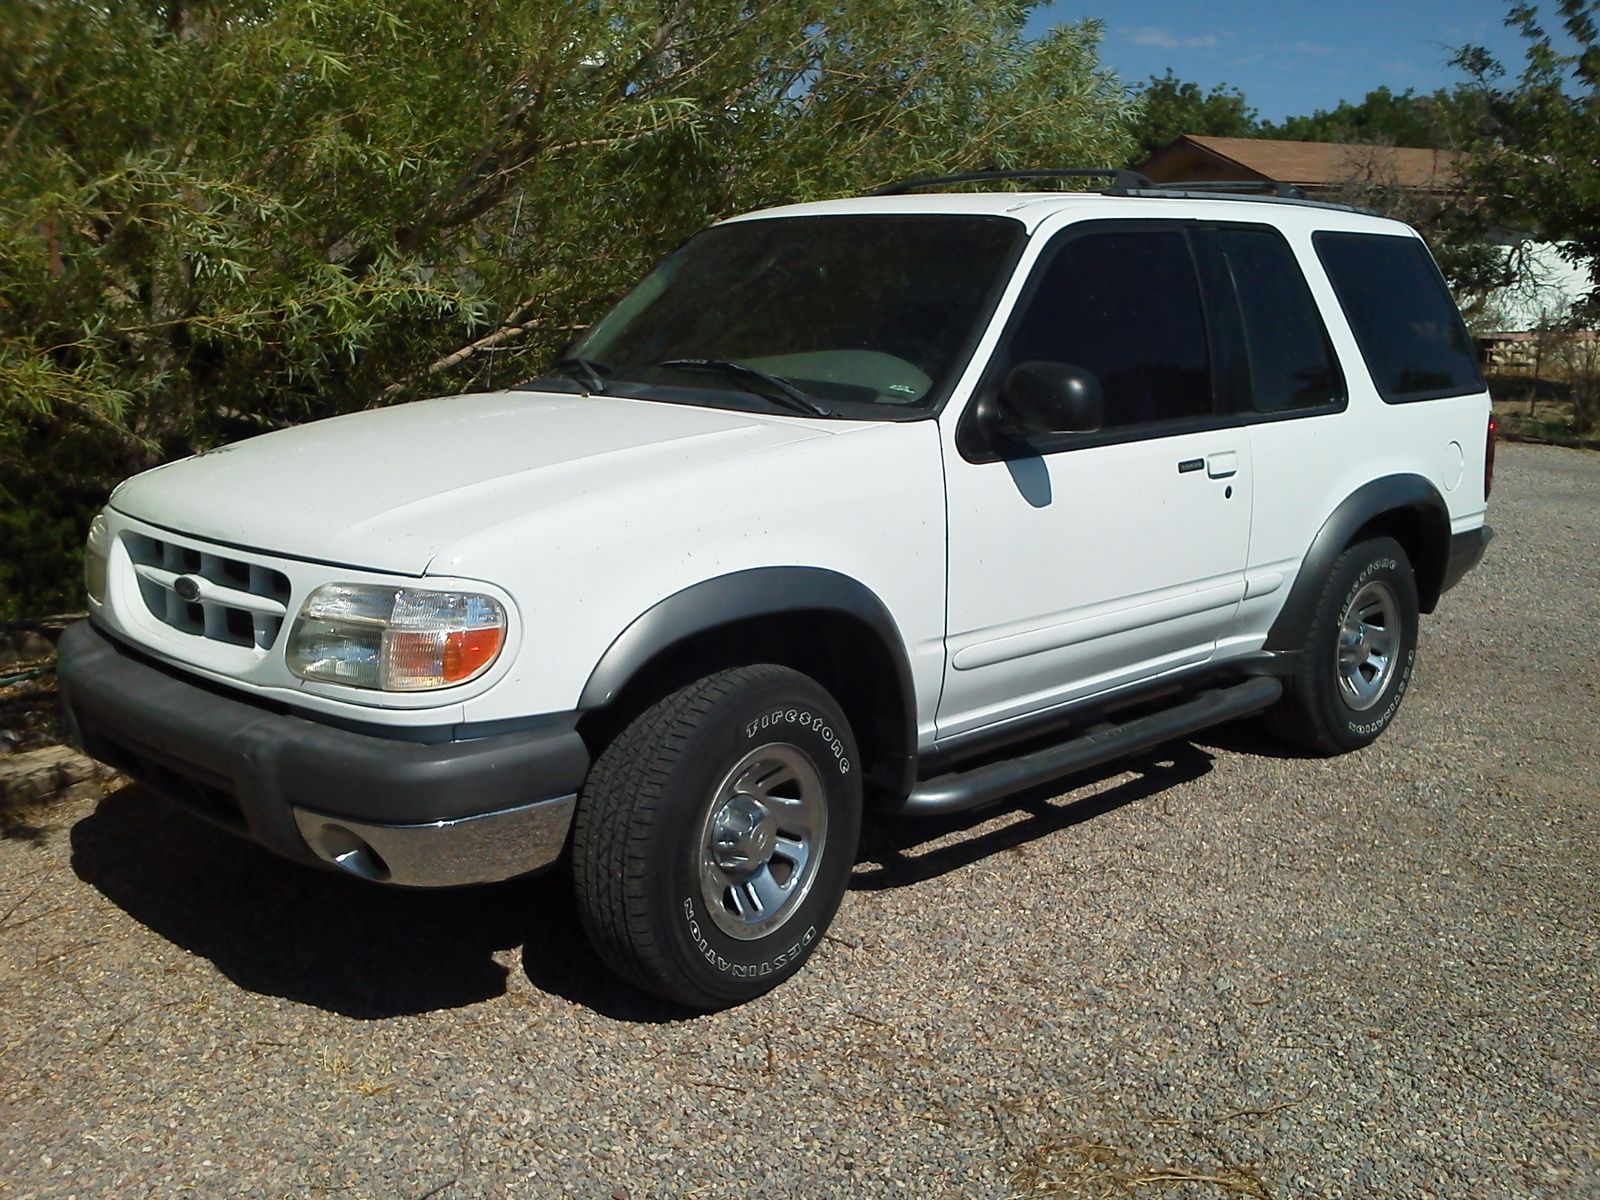 search results ford explorer ranger repair troubleshooting